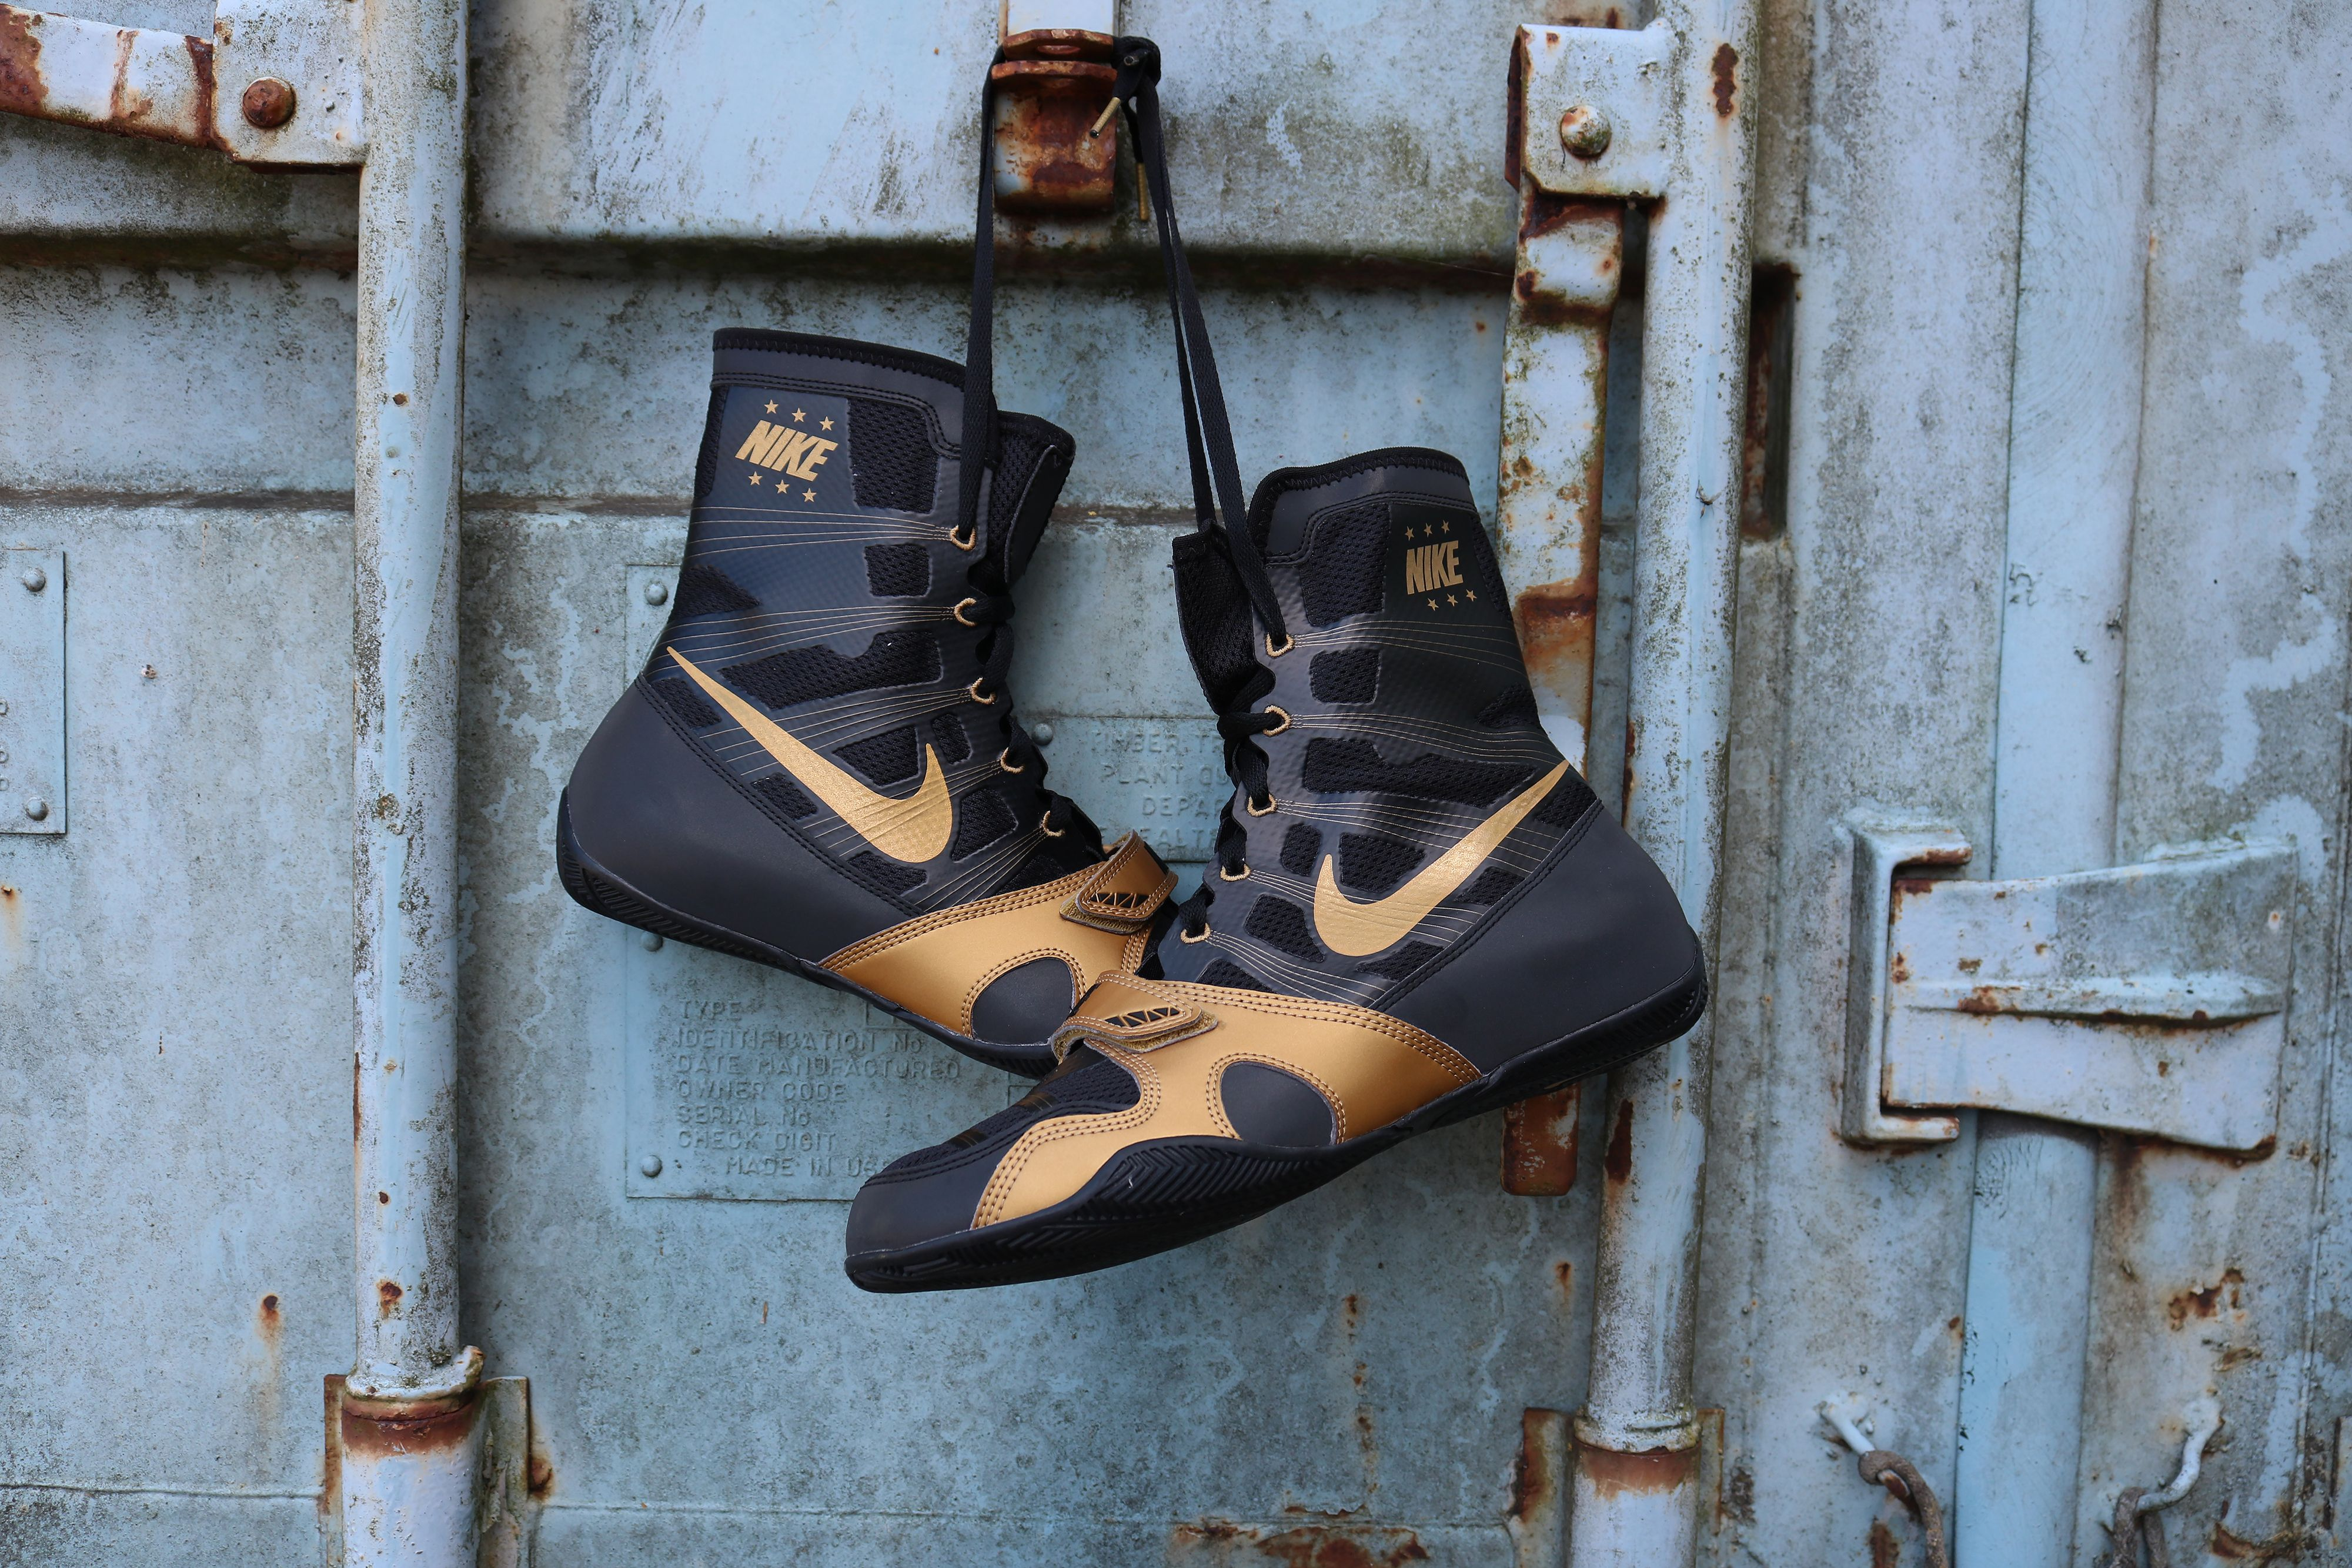 Nike Hyper KO Limited Edition Boxing